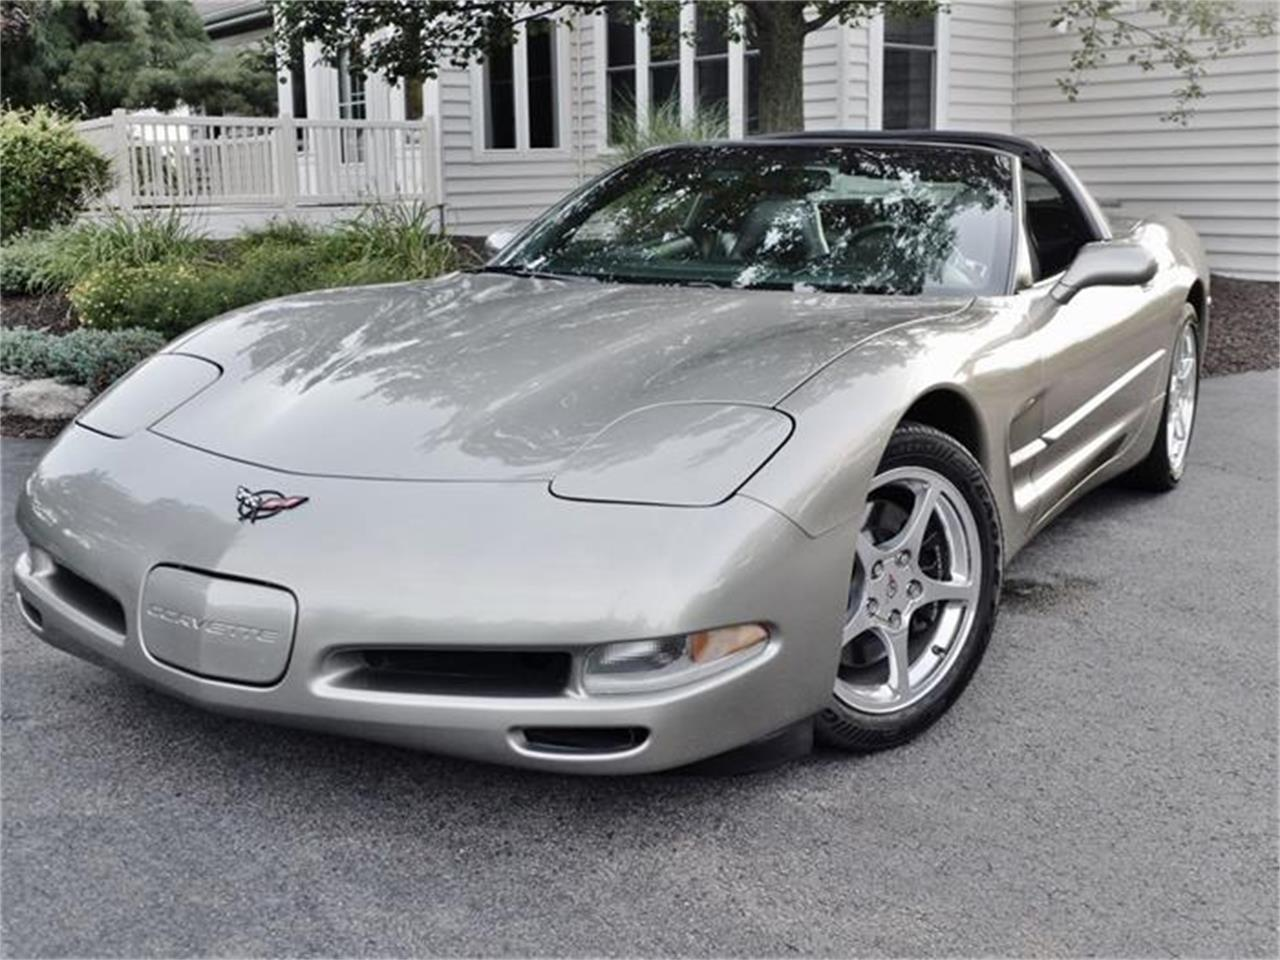 Large Picture of '99 Chevrolet Corvette located in Old Forge Pennsylvania - HB0J